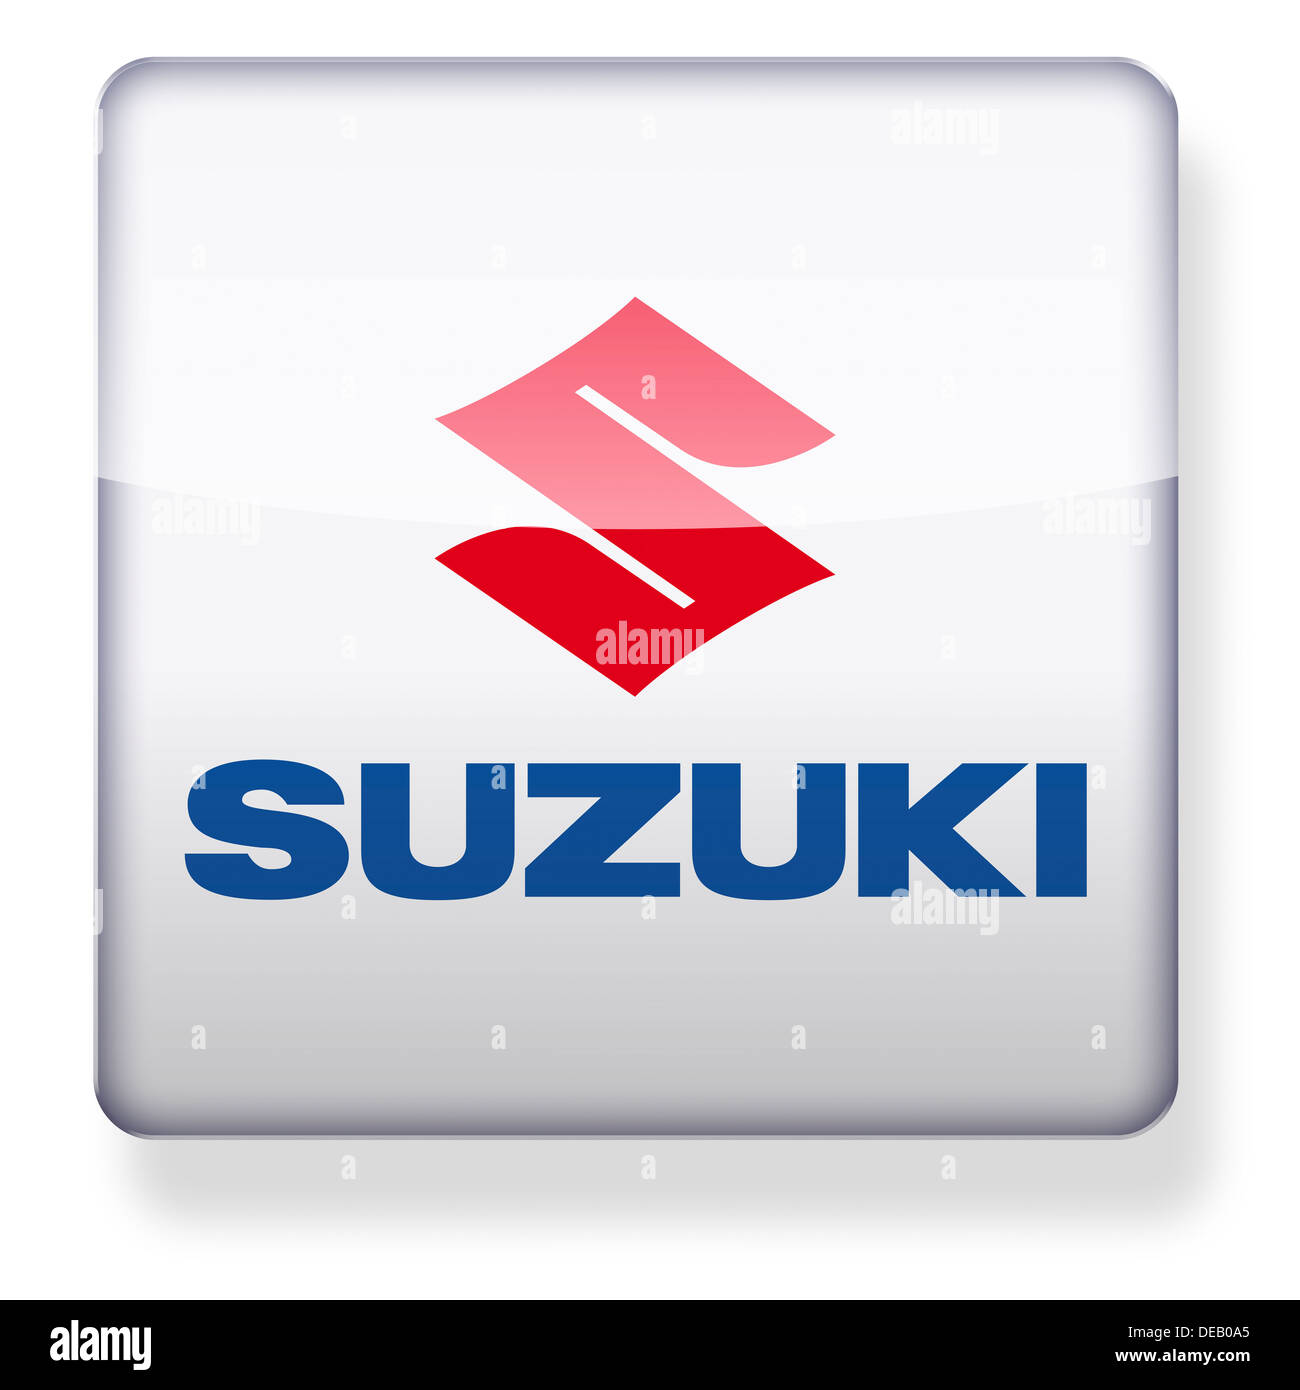 Suzuki logo as an app icon. Clipping path included Stock Photo ...